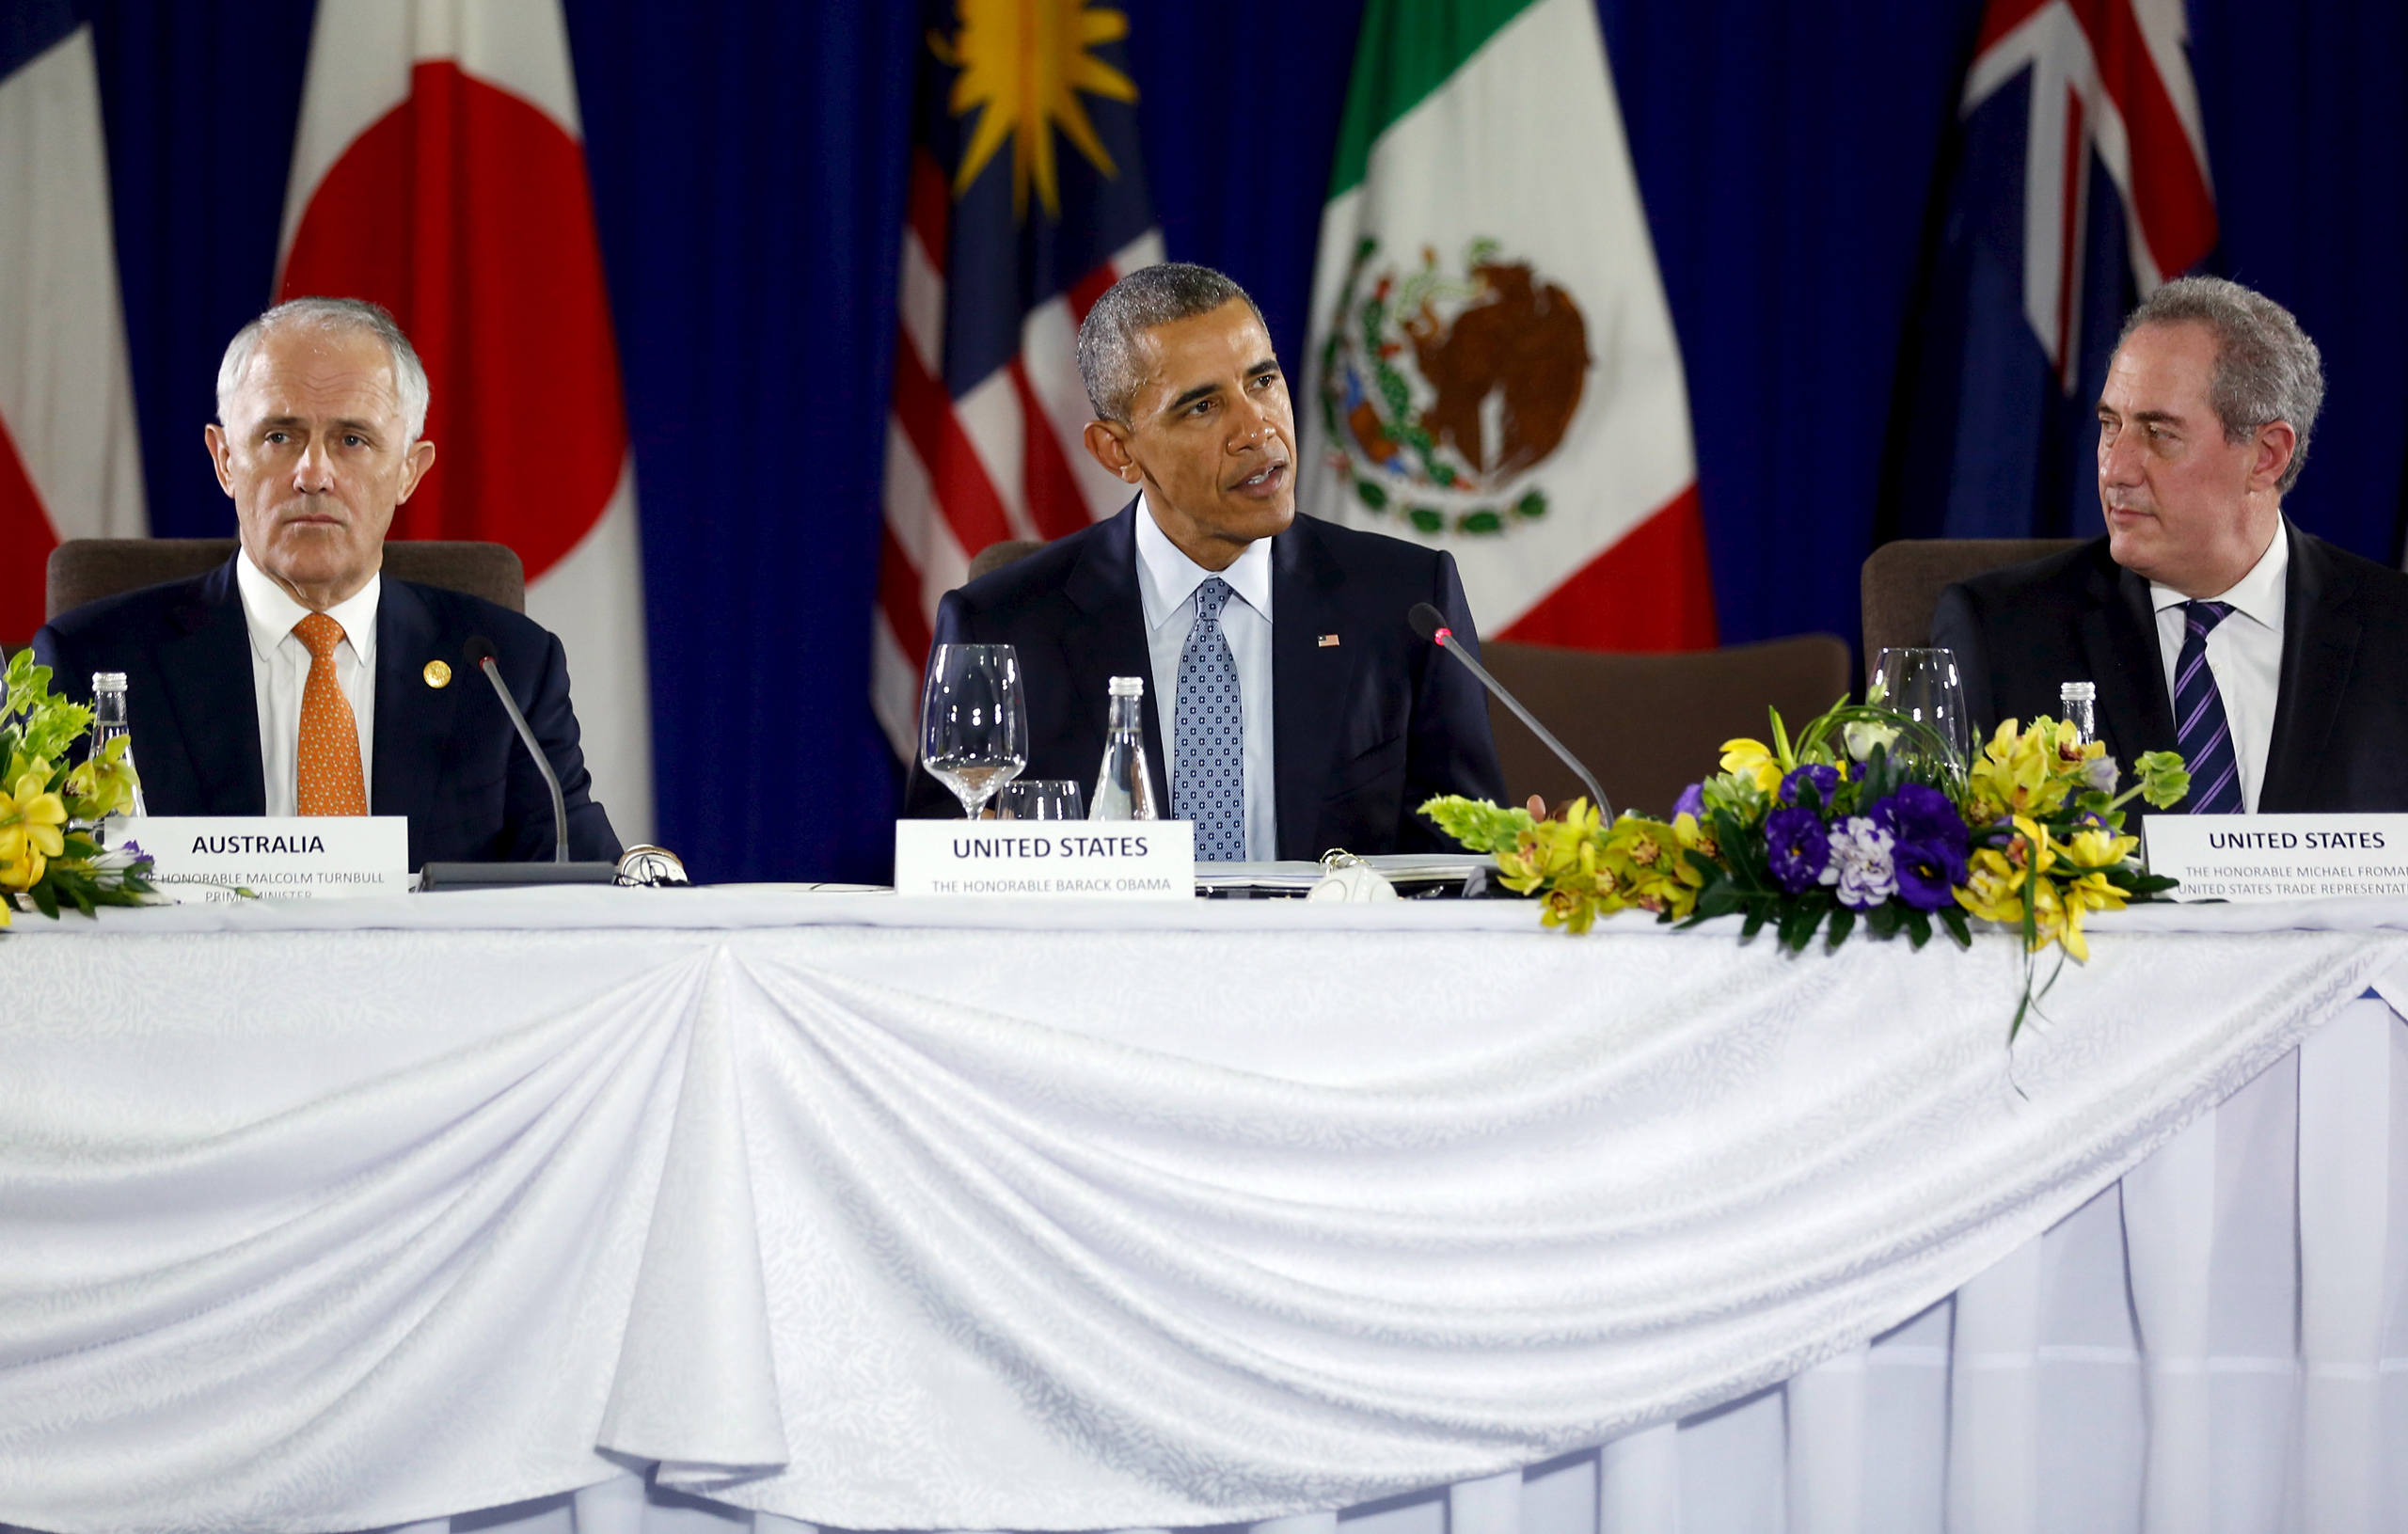 President Barack Obama, flanked by Australia Prime Minister Malcolm Turnbull (left) and U.S. Trade Representative Michael Froman (right), delivers remarks at a meeting with Trans-Pacific Partnership leaders, alongside the APEC Summit in Manila on Nov. 18, 2015.